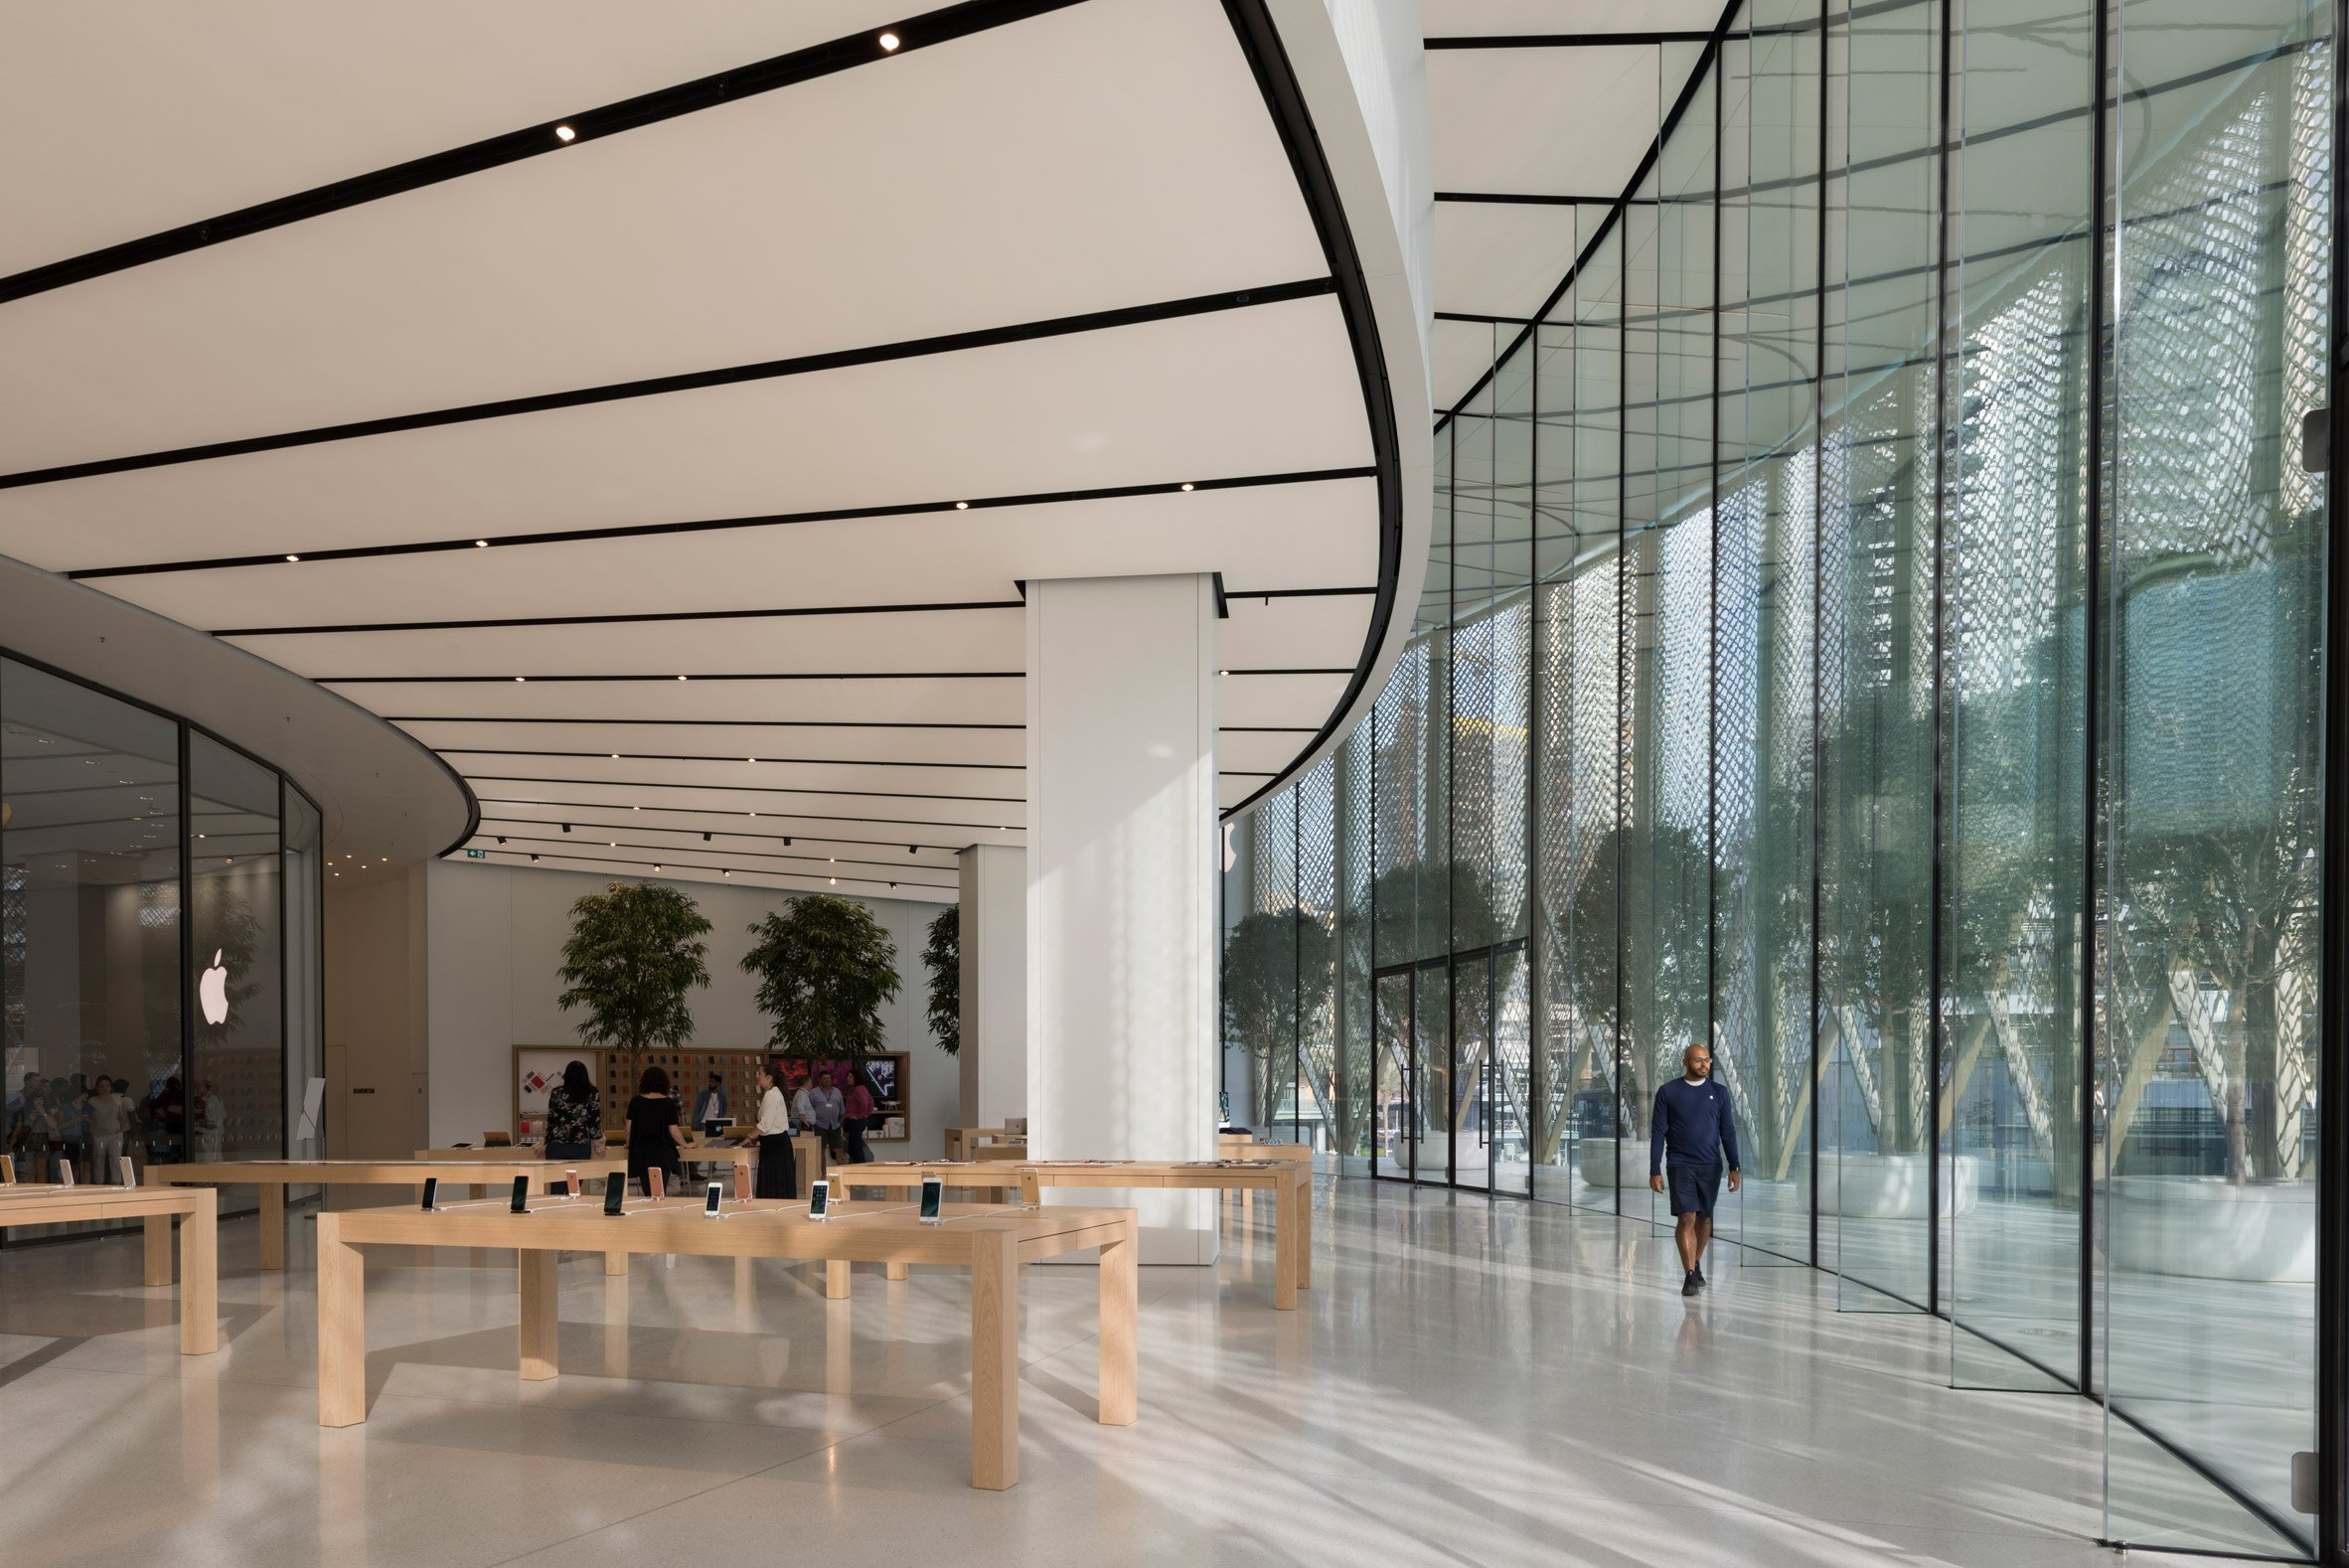 apple-dubai-mall-foster-partners-architecture-retail-uae_dezeen_2364_col_2